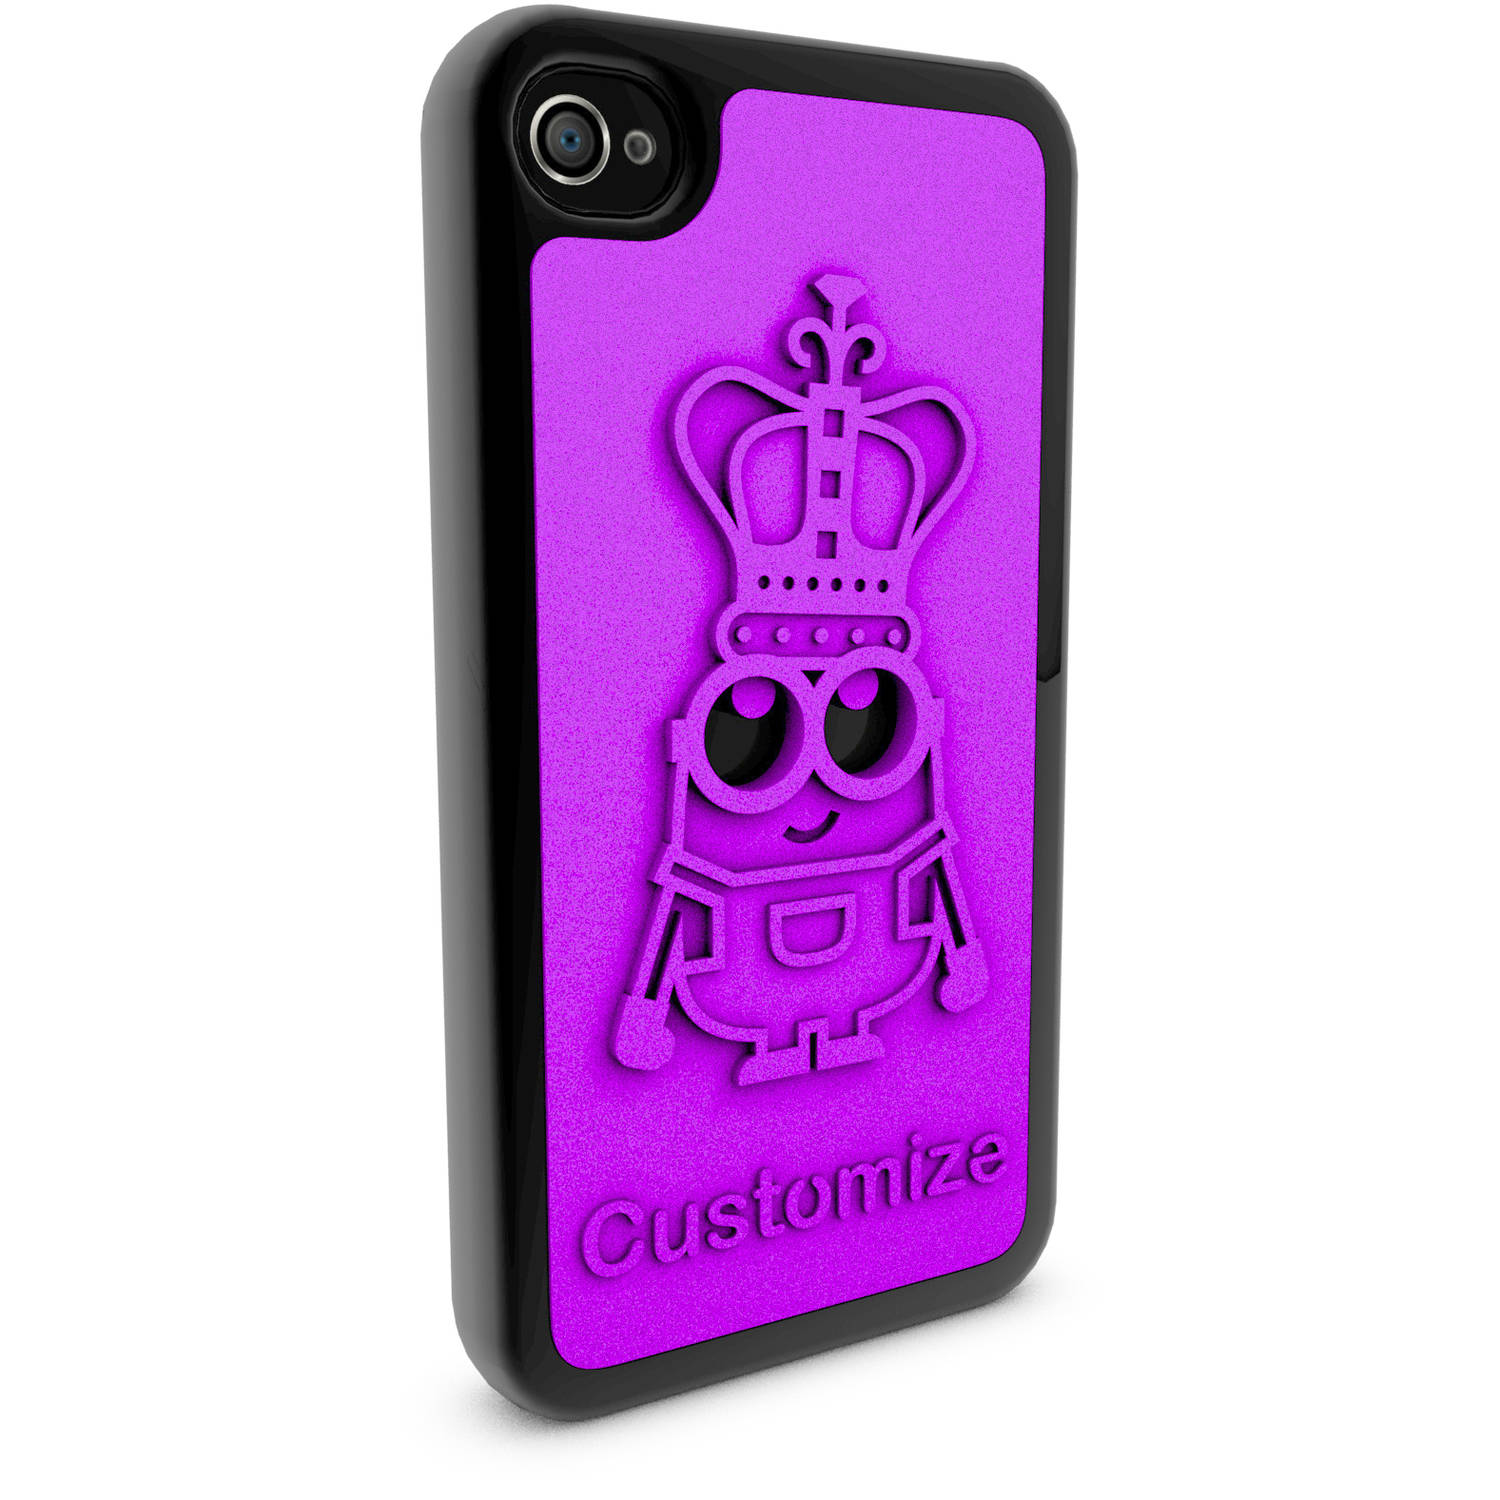 Apple iPhone 4 and 4S 3D Printed Custom Phone Case - Minions - King Bob